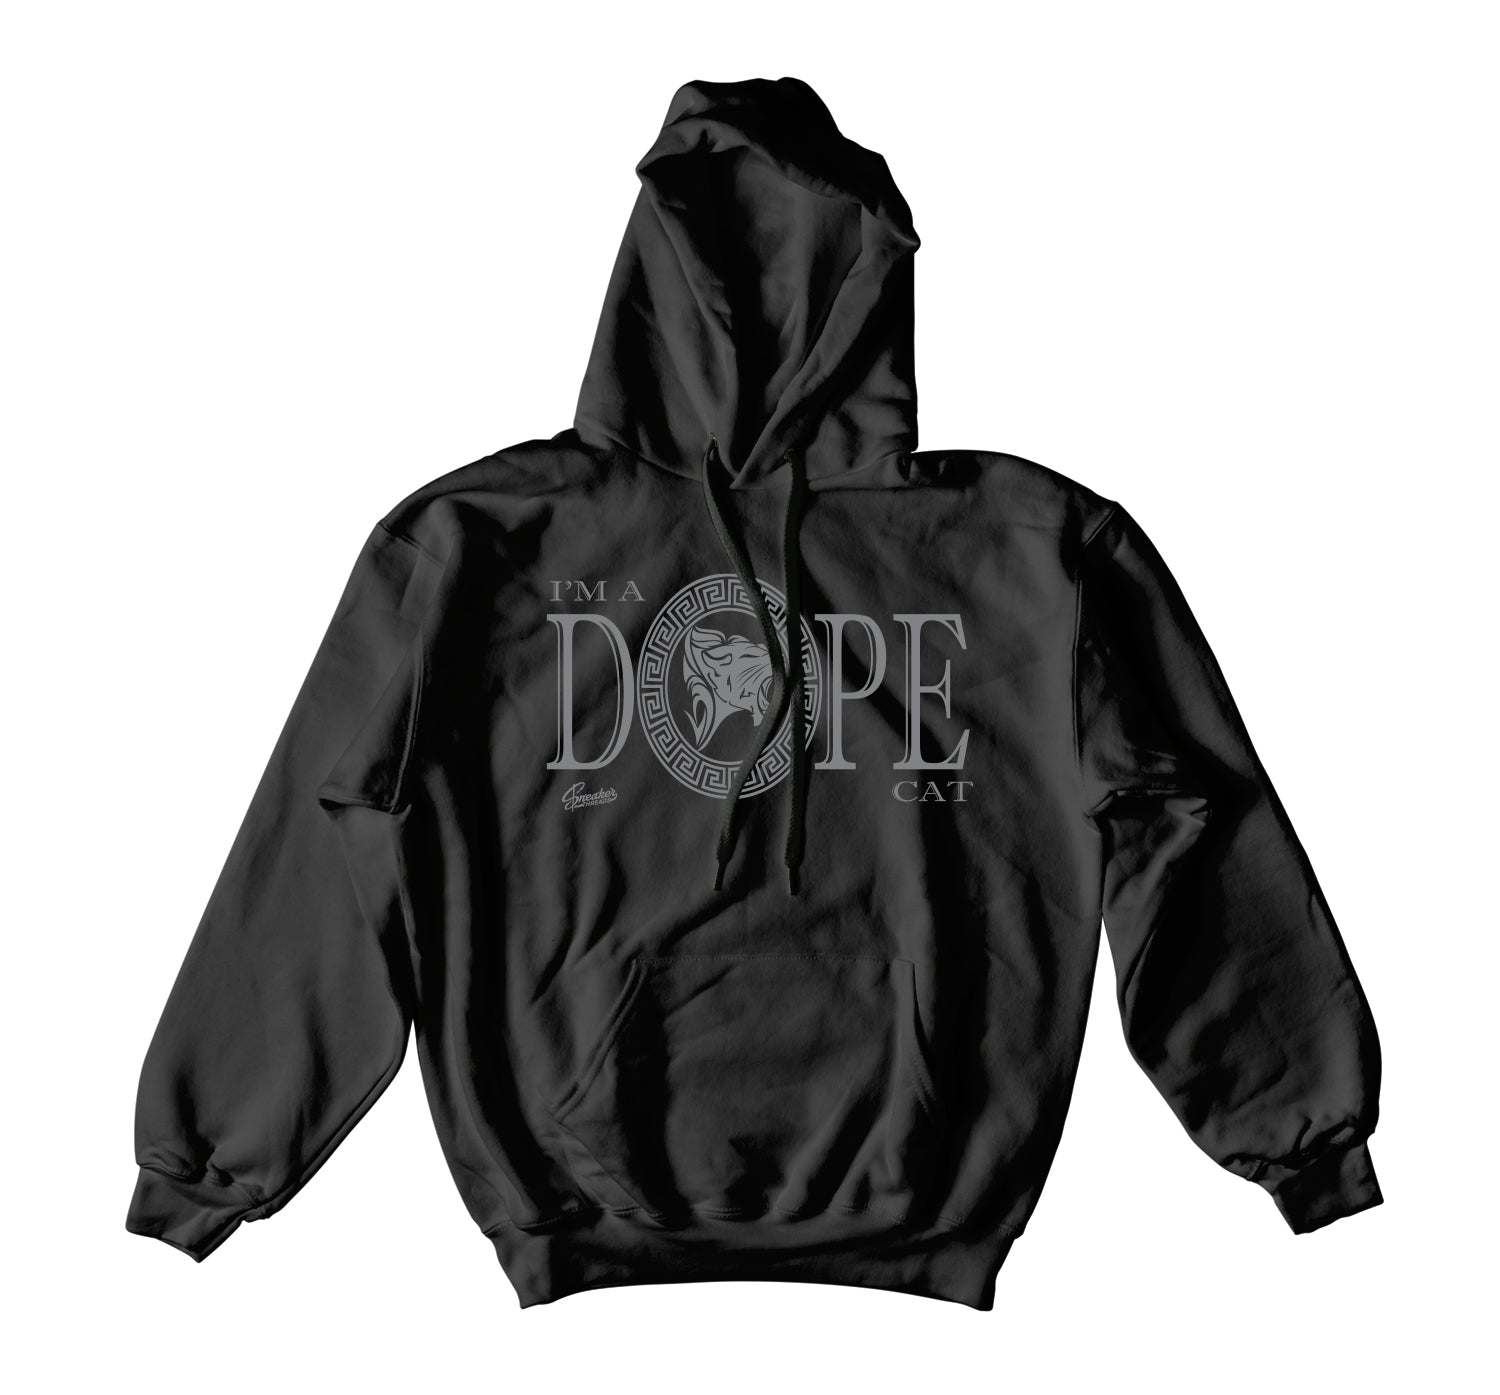 Jordan 4 Black Cat DPE Cat Hoody